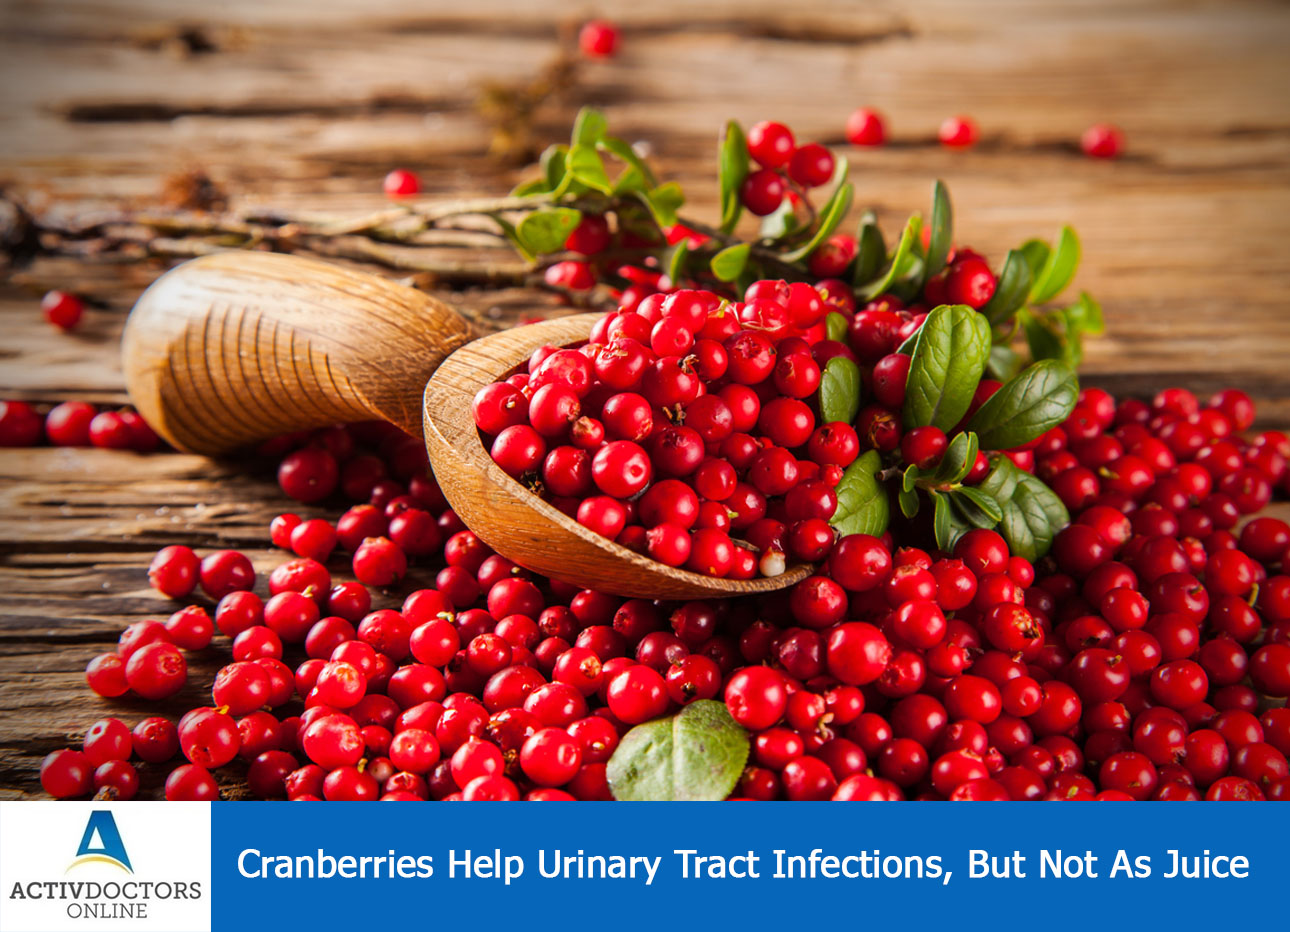 Cranberries Help Urinary Tract Infections, But Not As Juice